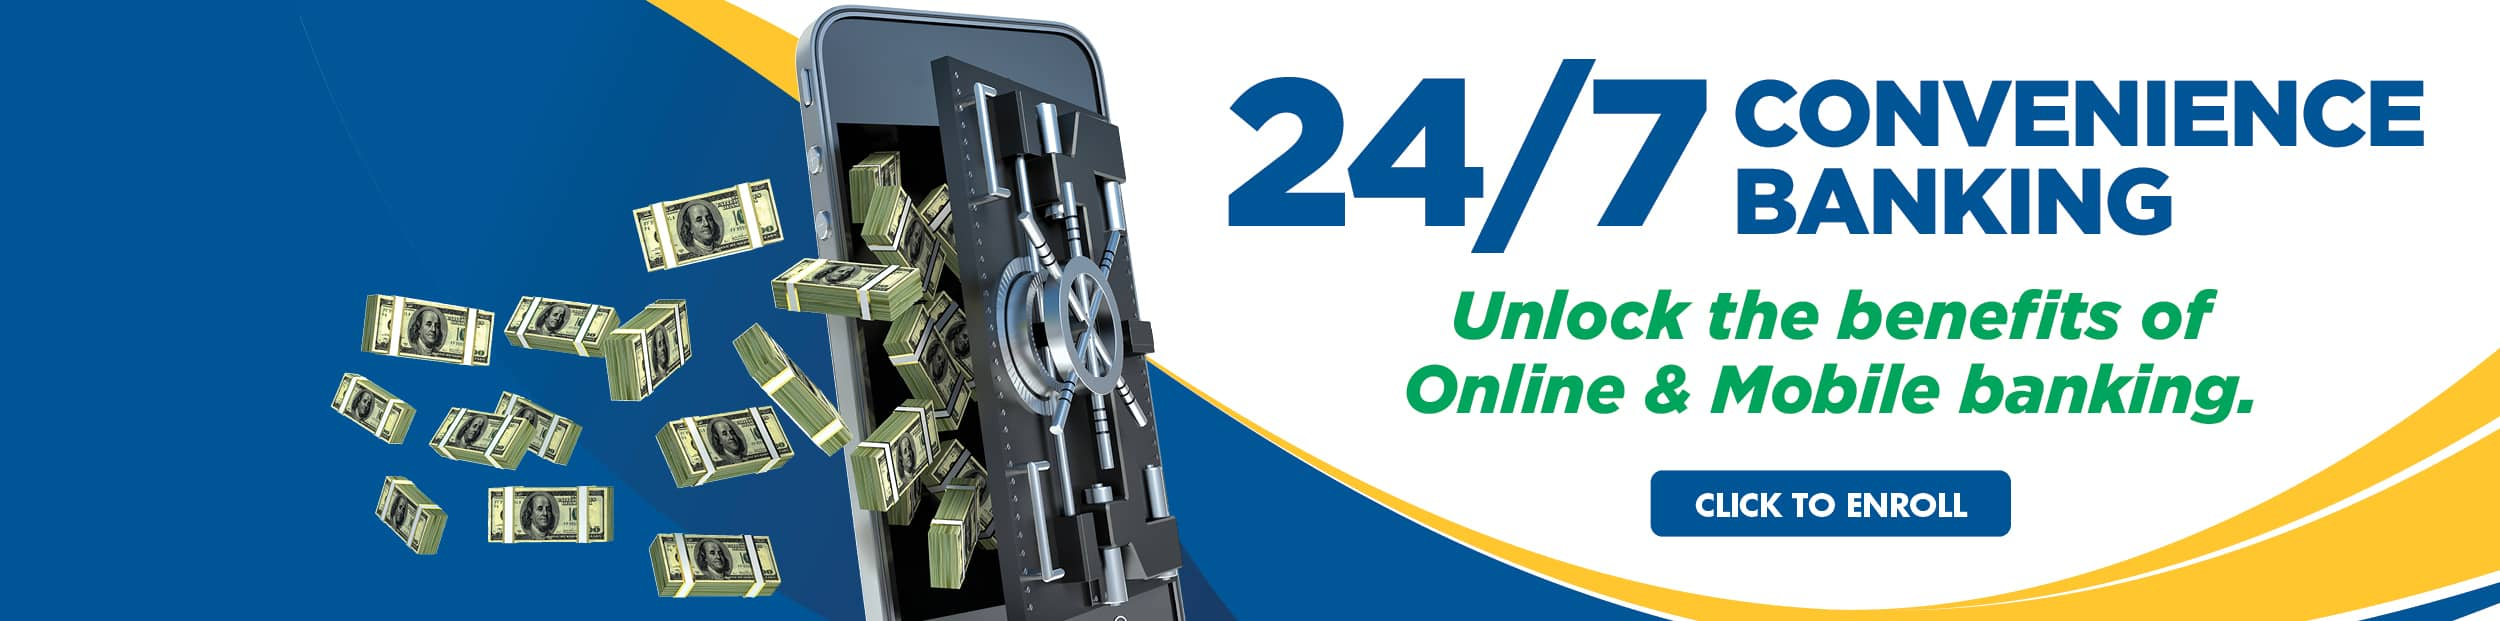 Online banking web banner with money flowing out of a cellphone looking vault.